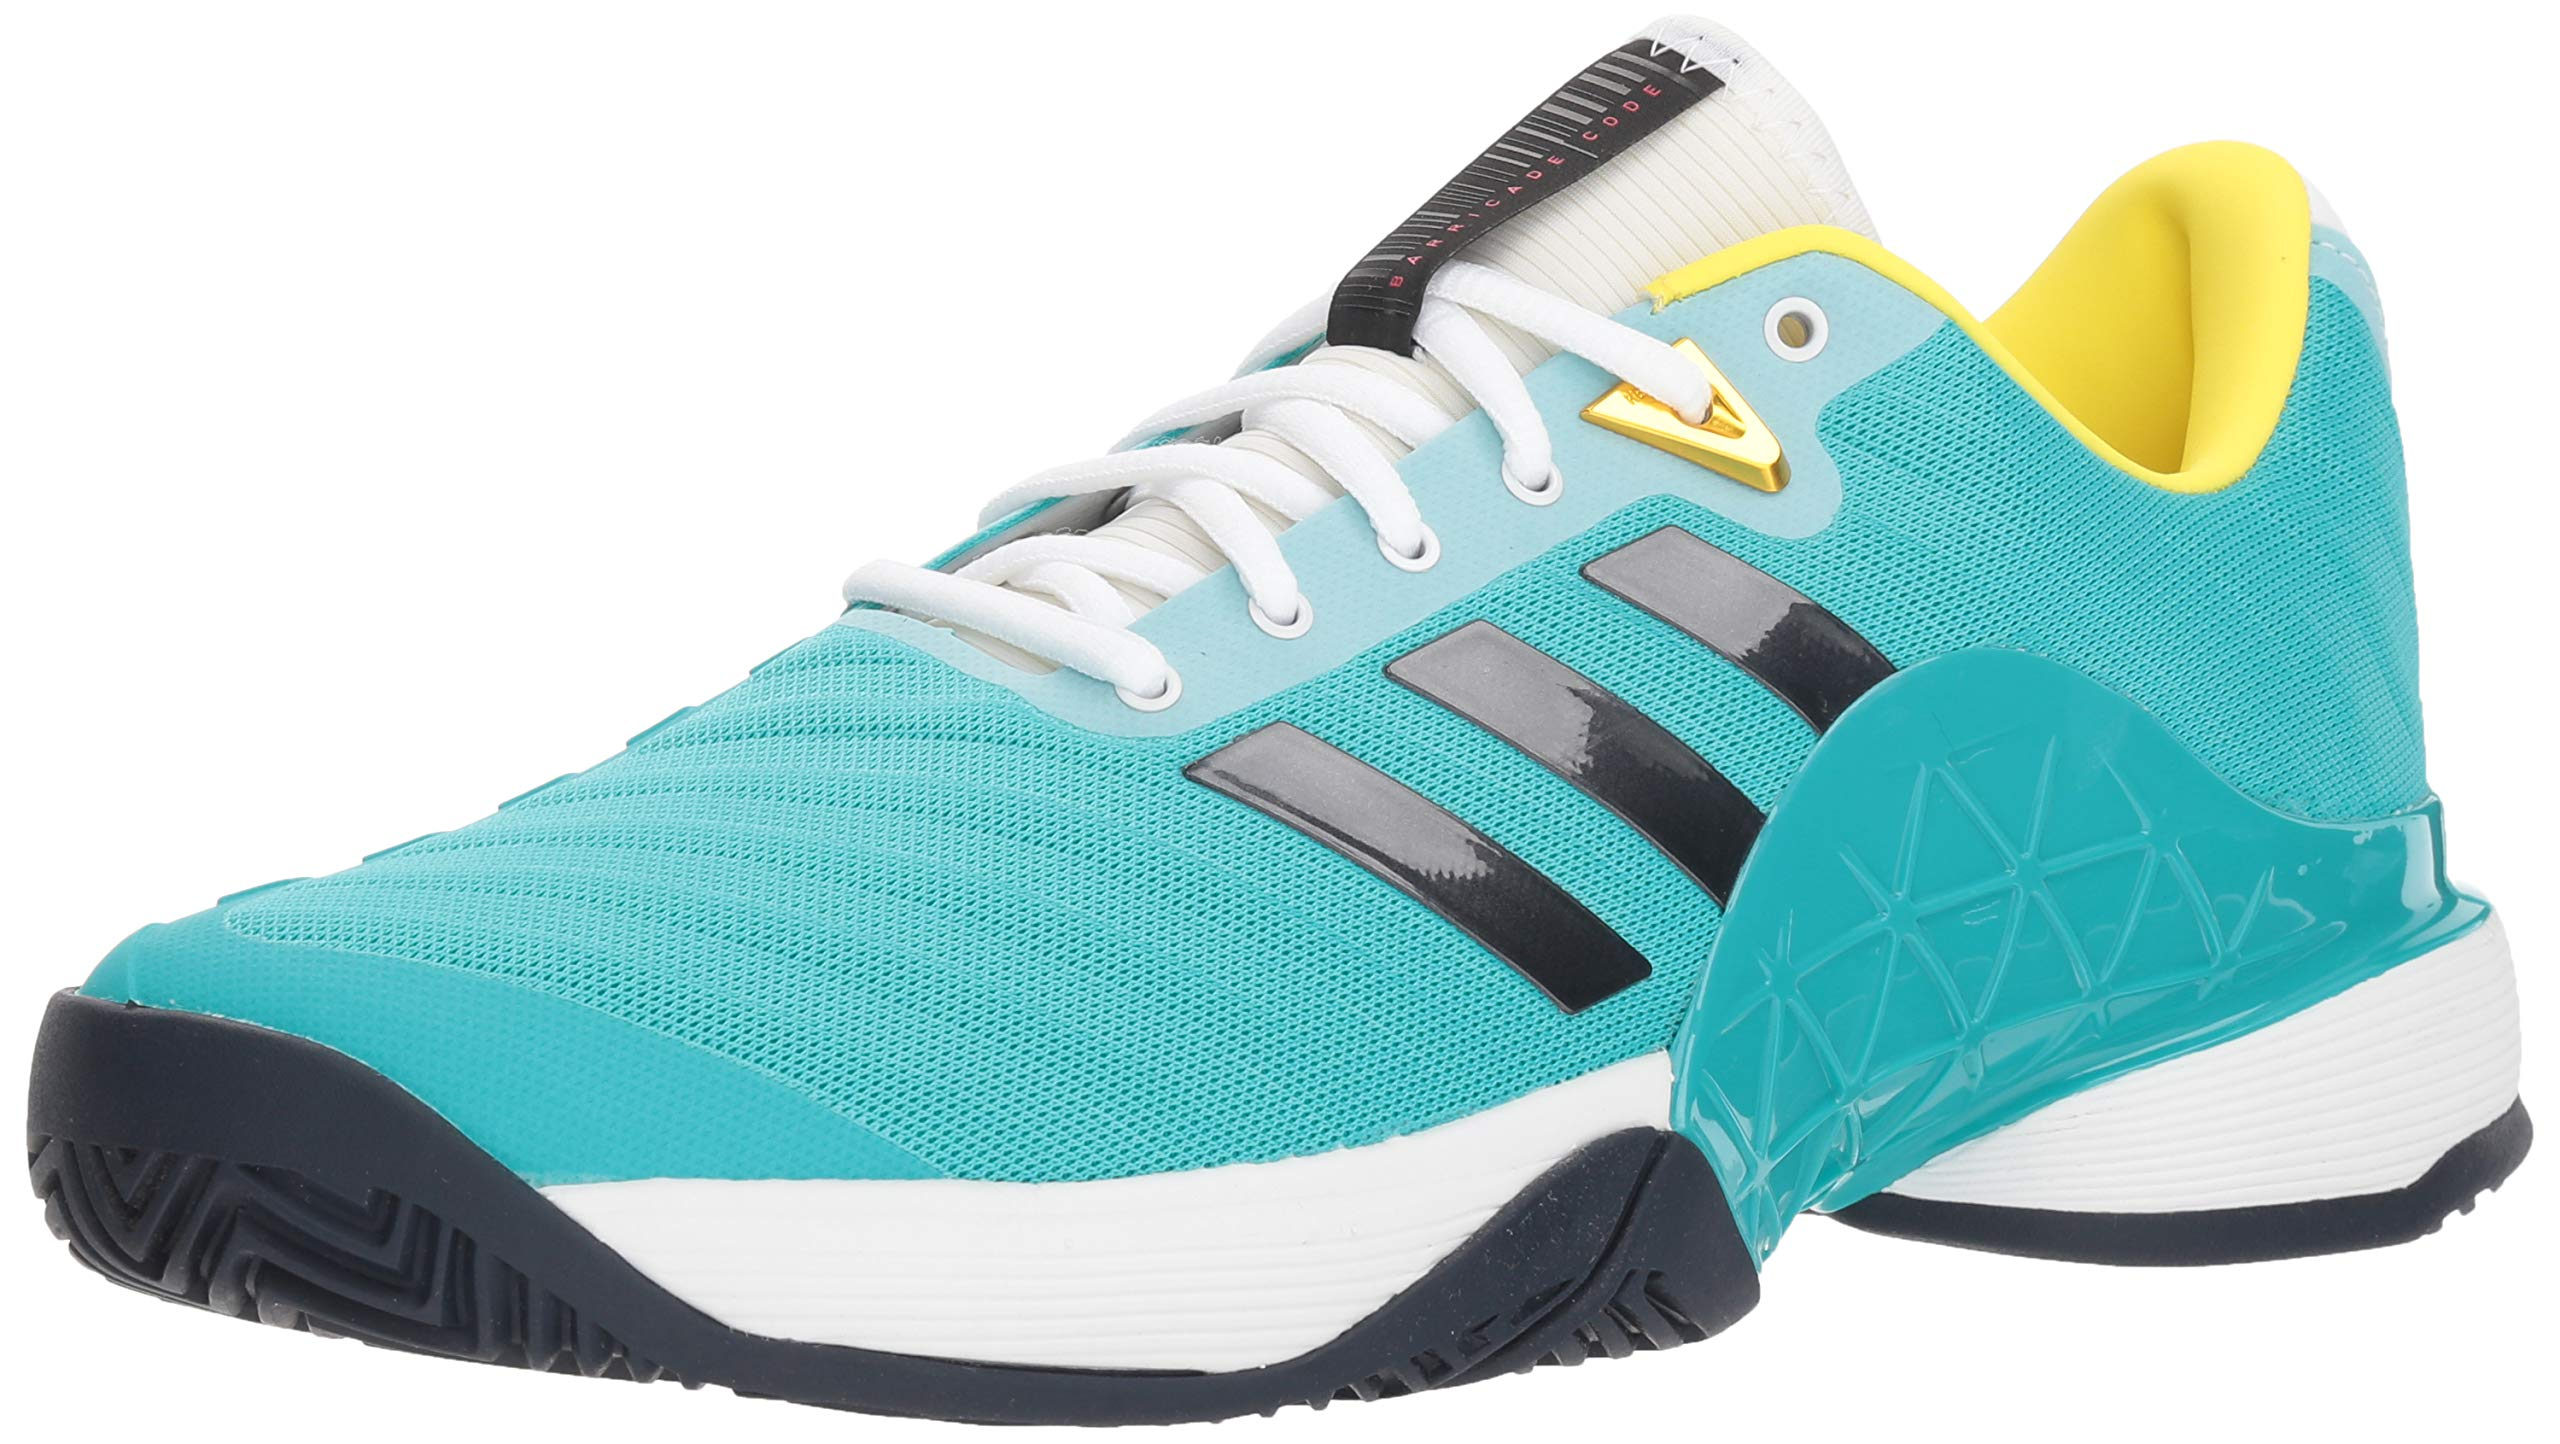 adidas Men's Barricade 2018 Tennis Shoe, Hi-Res Aqua/Legend Ink/Shock Yellow, 7 M US